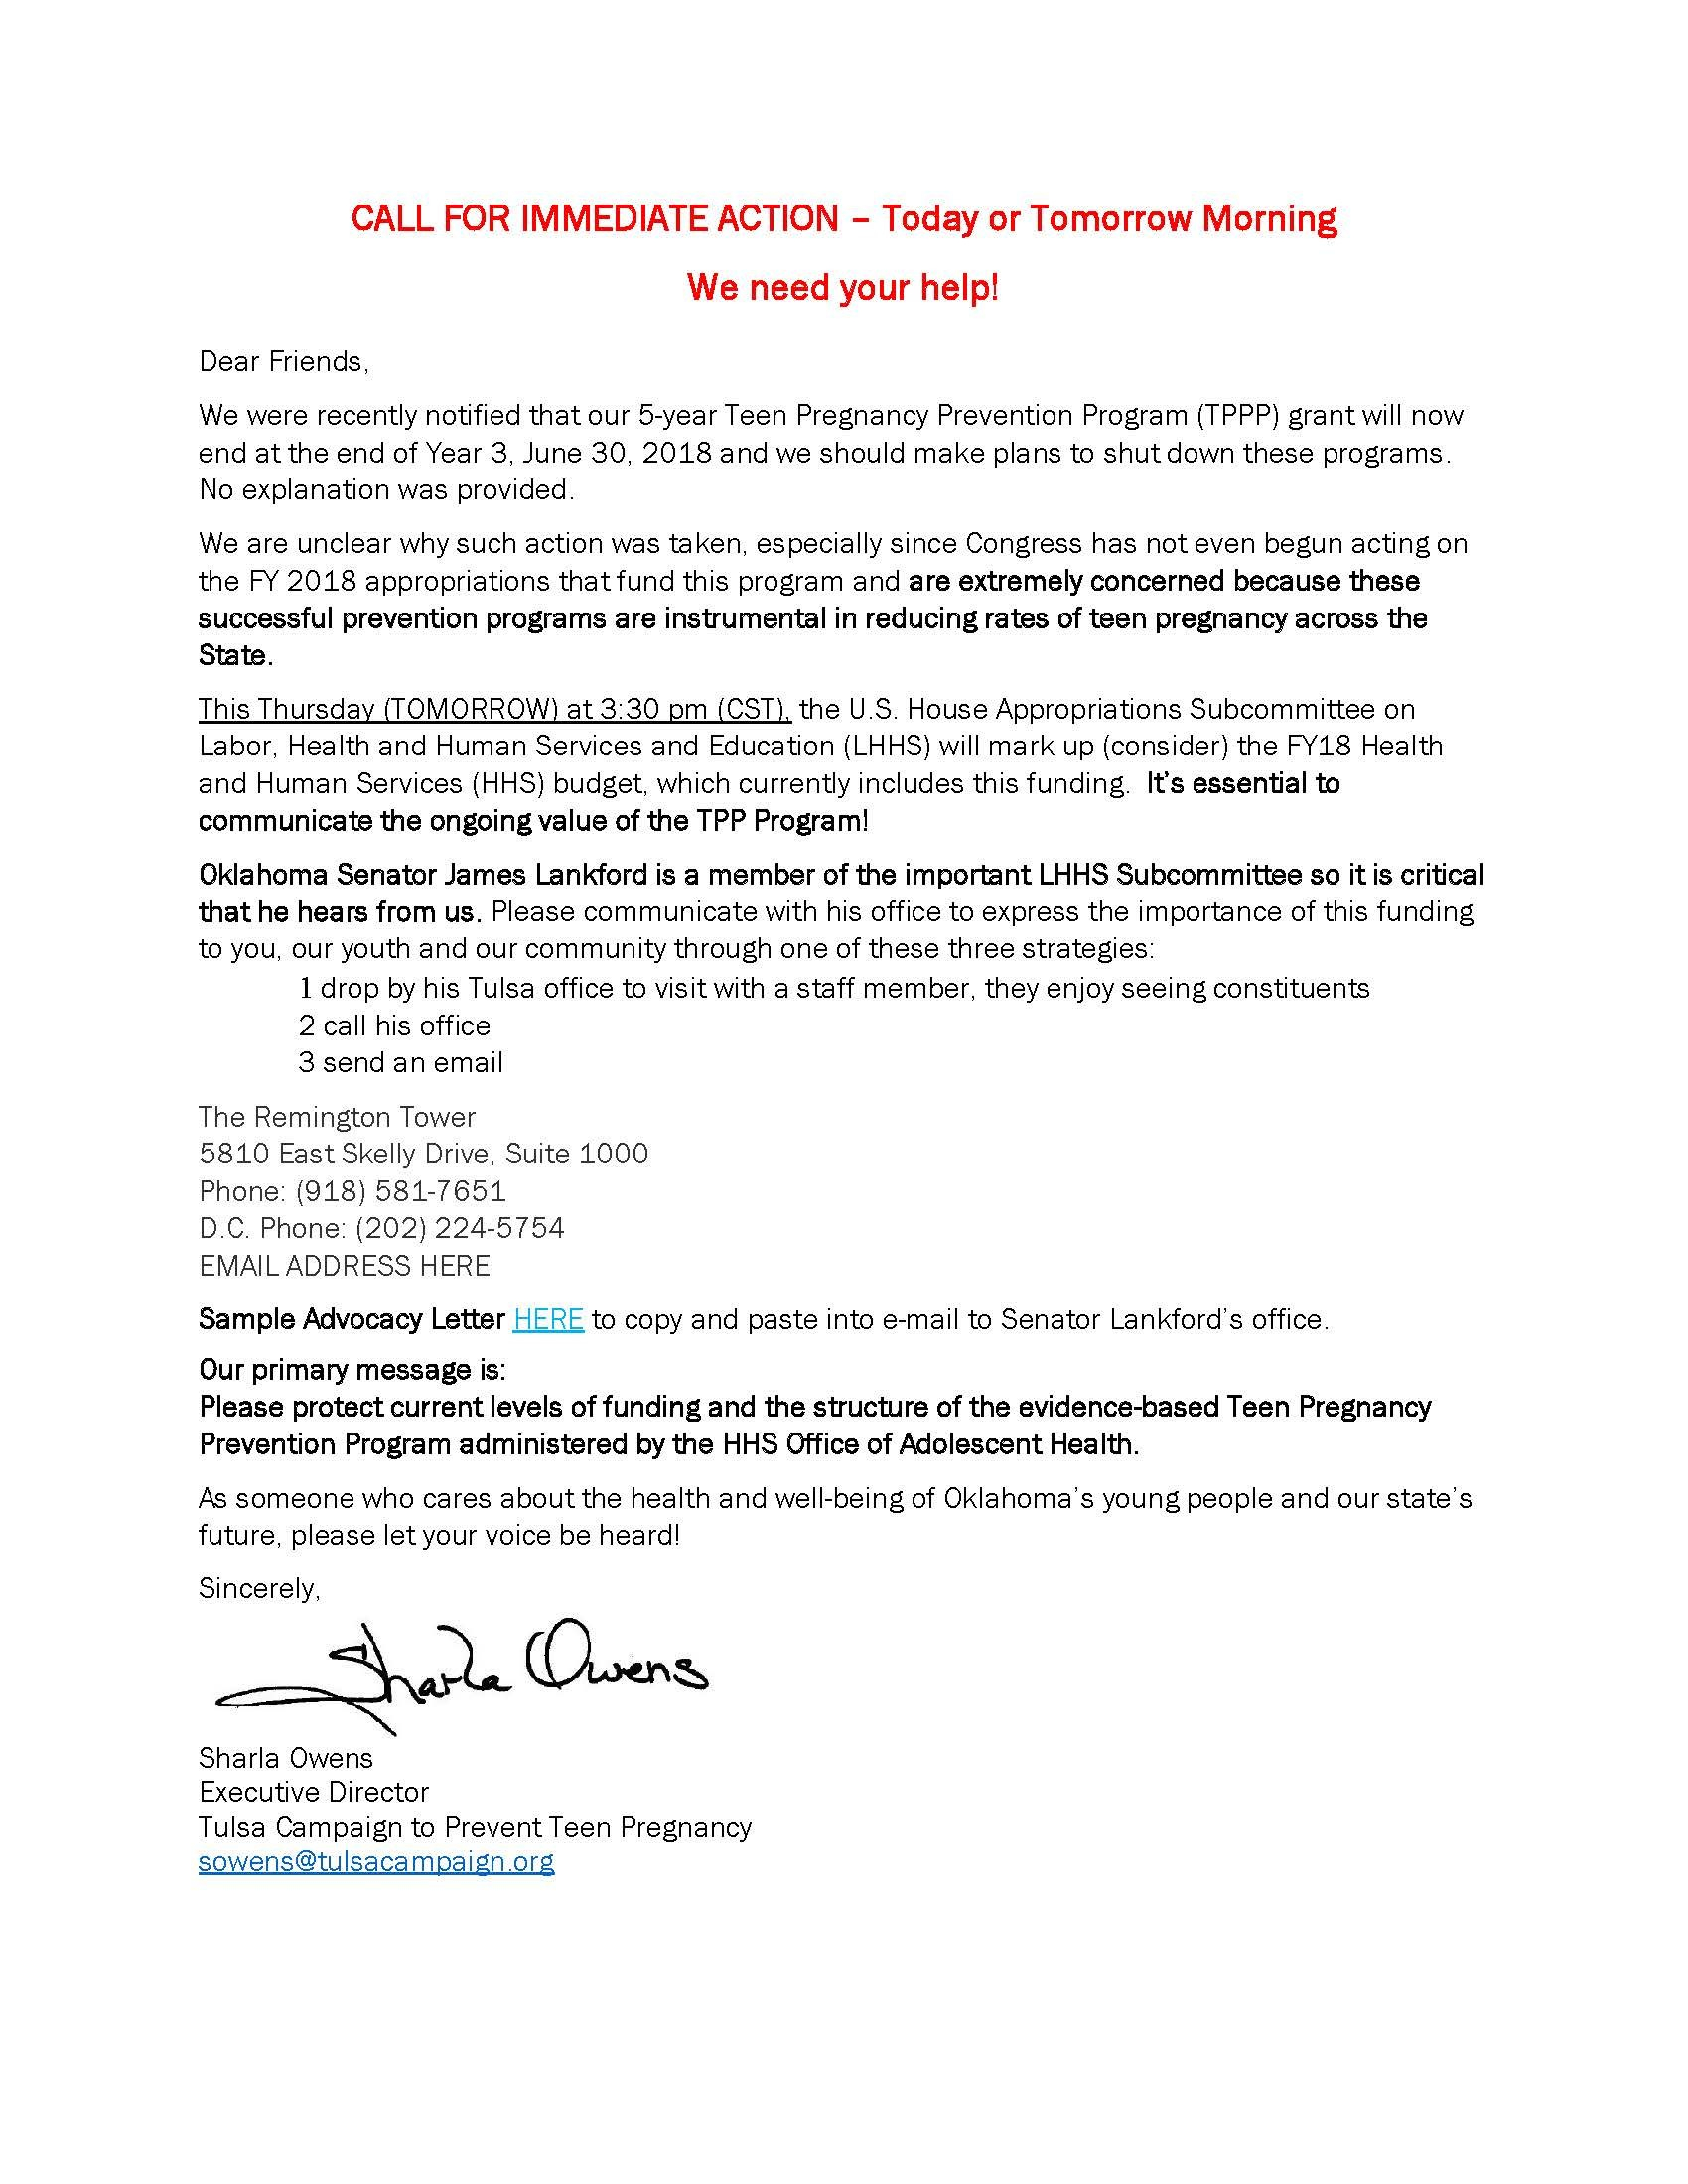 Sample Advocacy Letter  Prevent Teen Pregnancy Inside Advocacy Letter Template